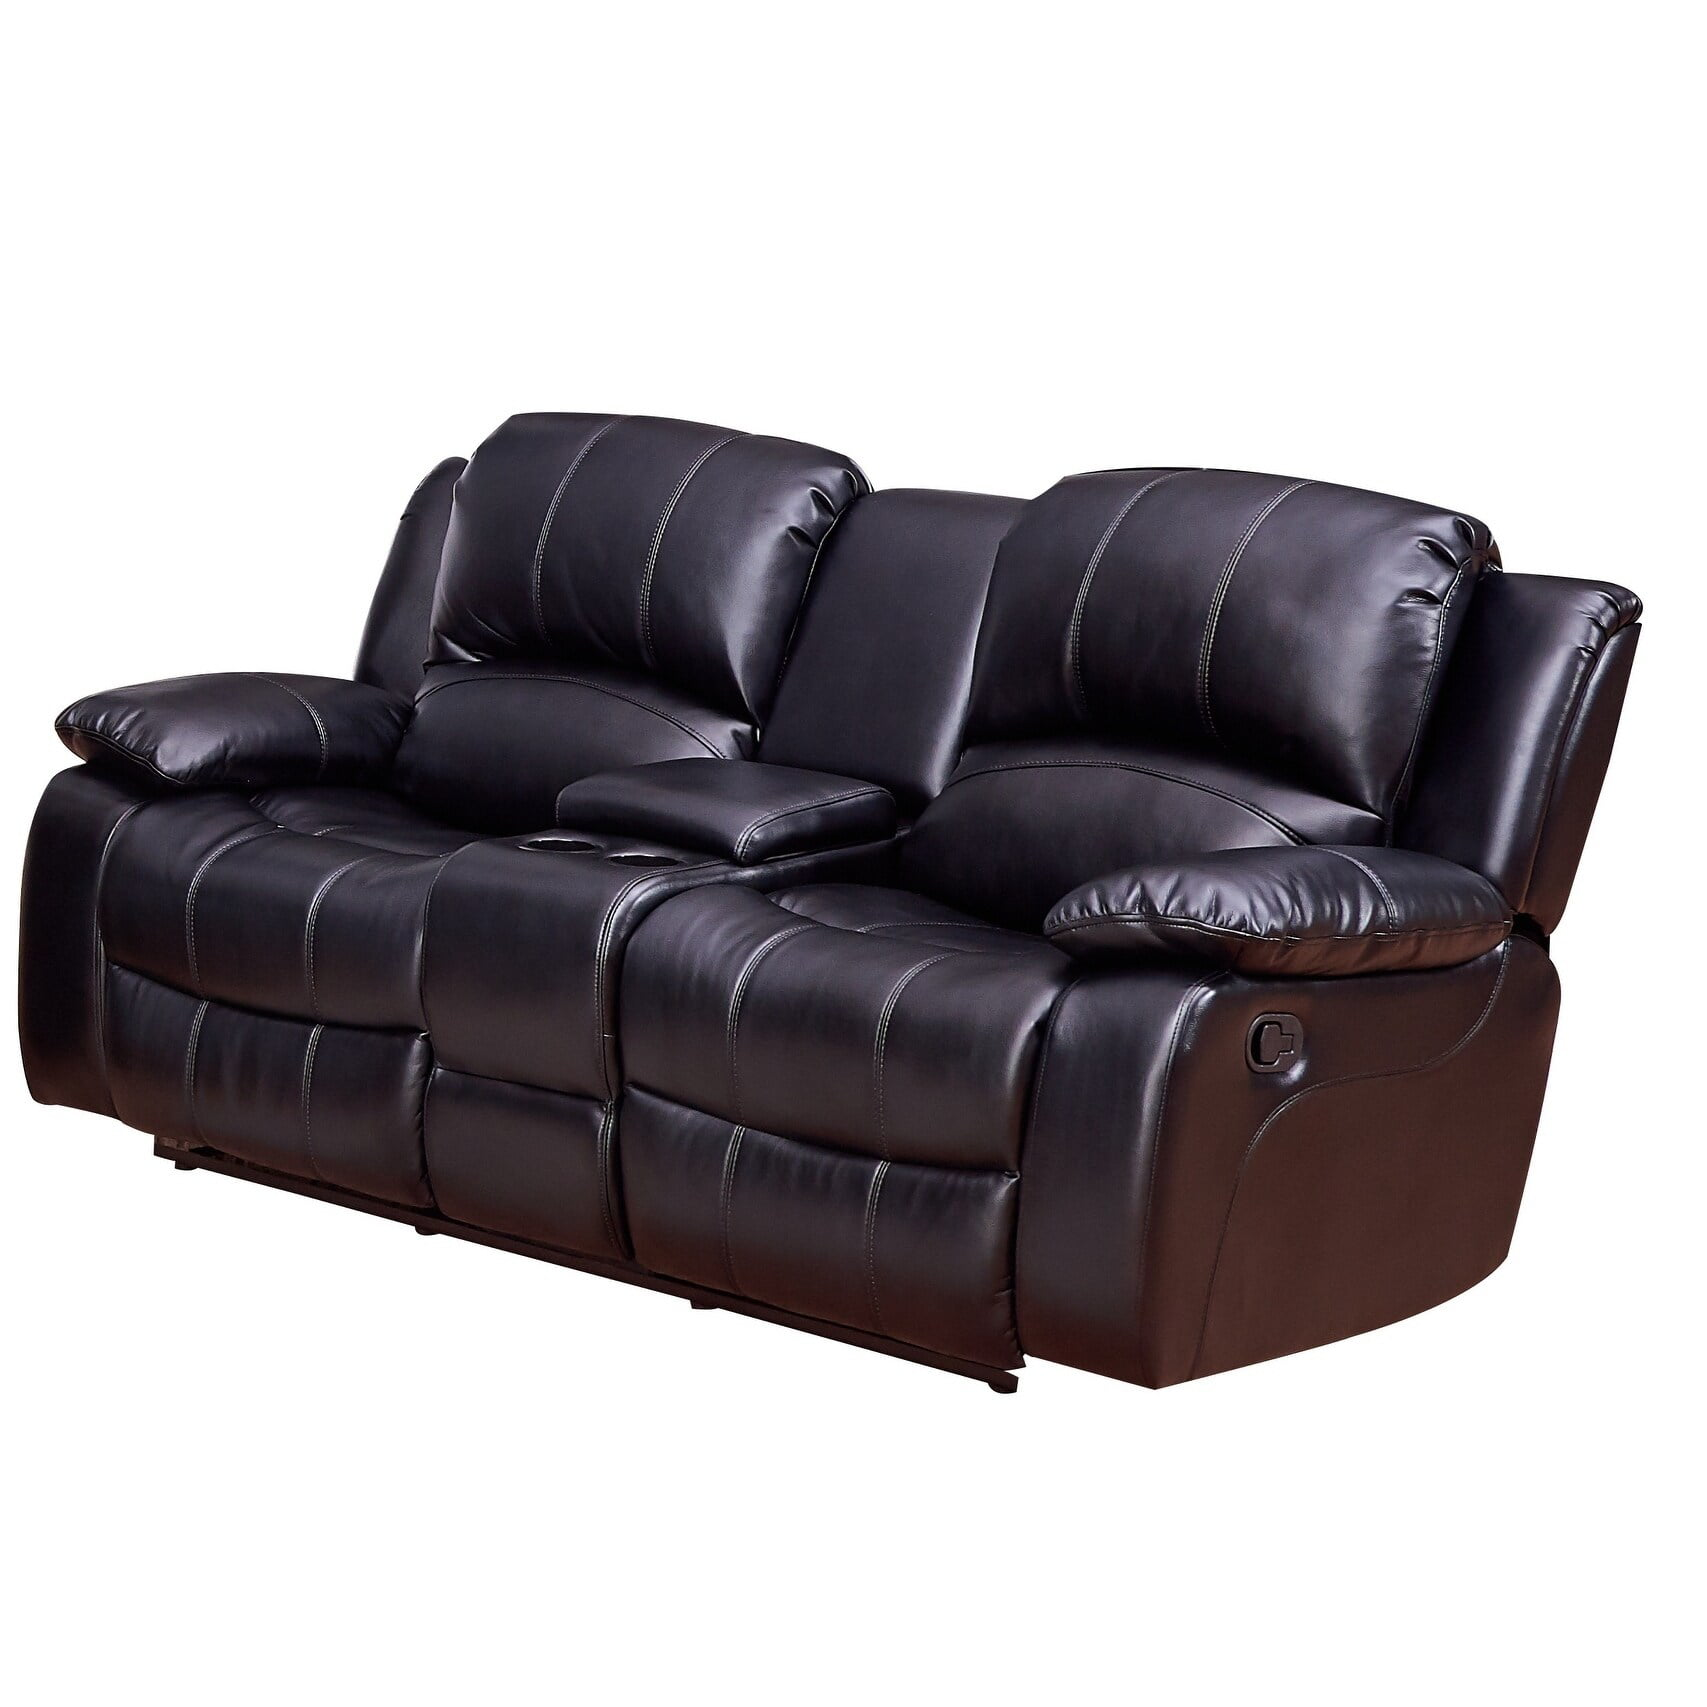 Vanity Art Bonded Leather Motions Sofa Manual Reclining Loveseat With Storage Console For Living Room Sofa Set 2 Seater Black Walmart Com Walmart Com